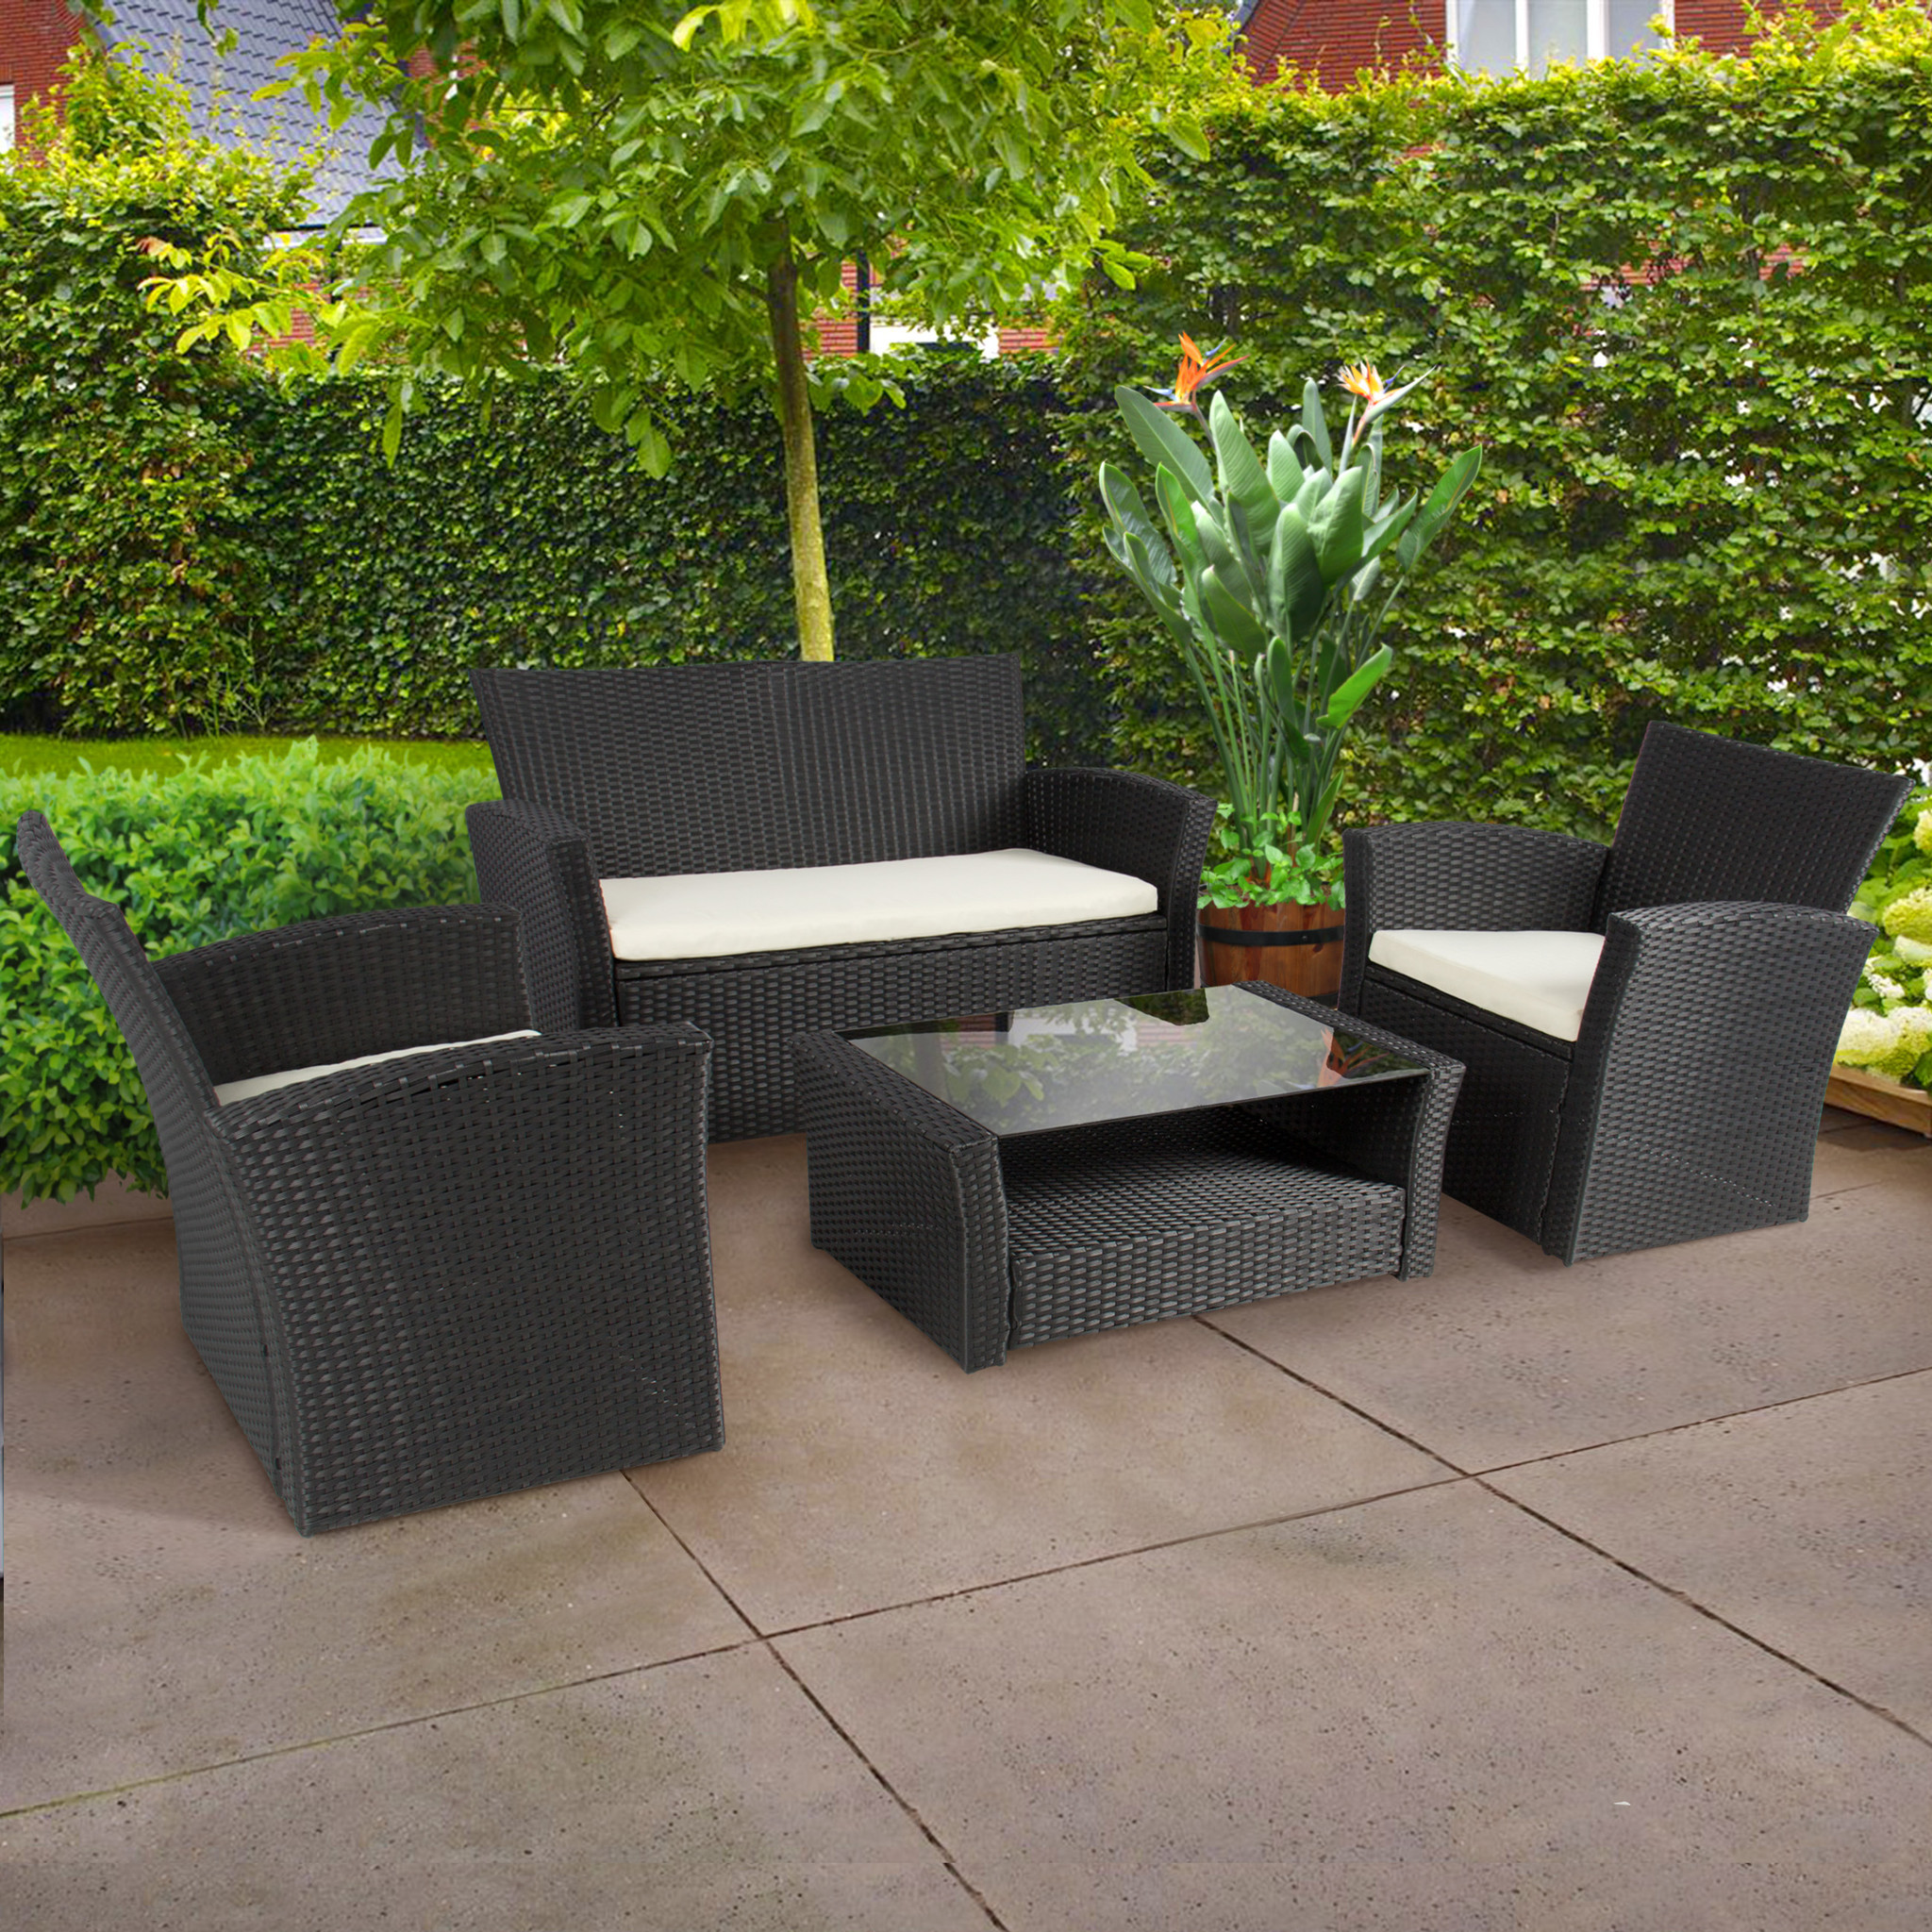 How to select the best quality patio furniture for your for Quality patio furniture